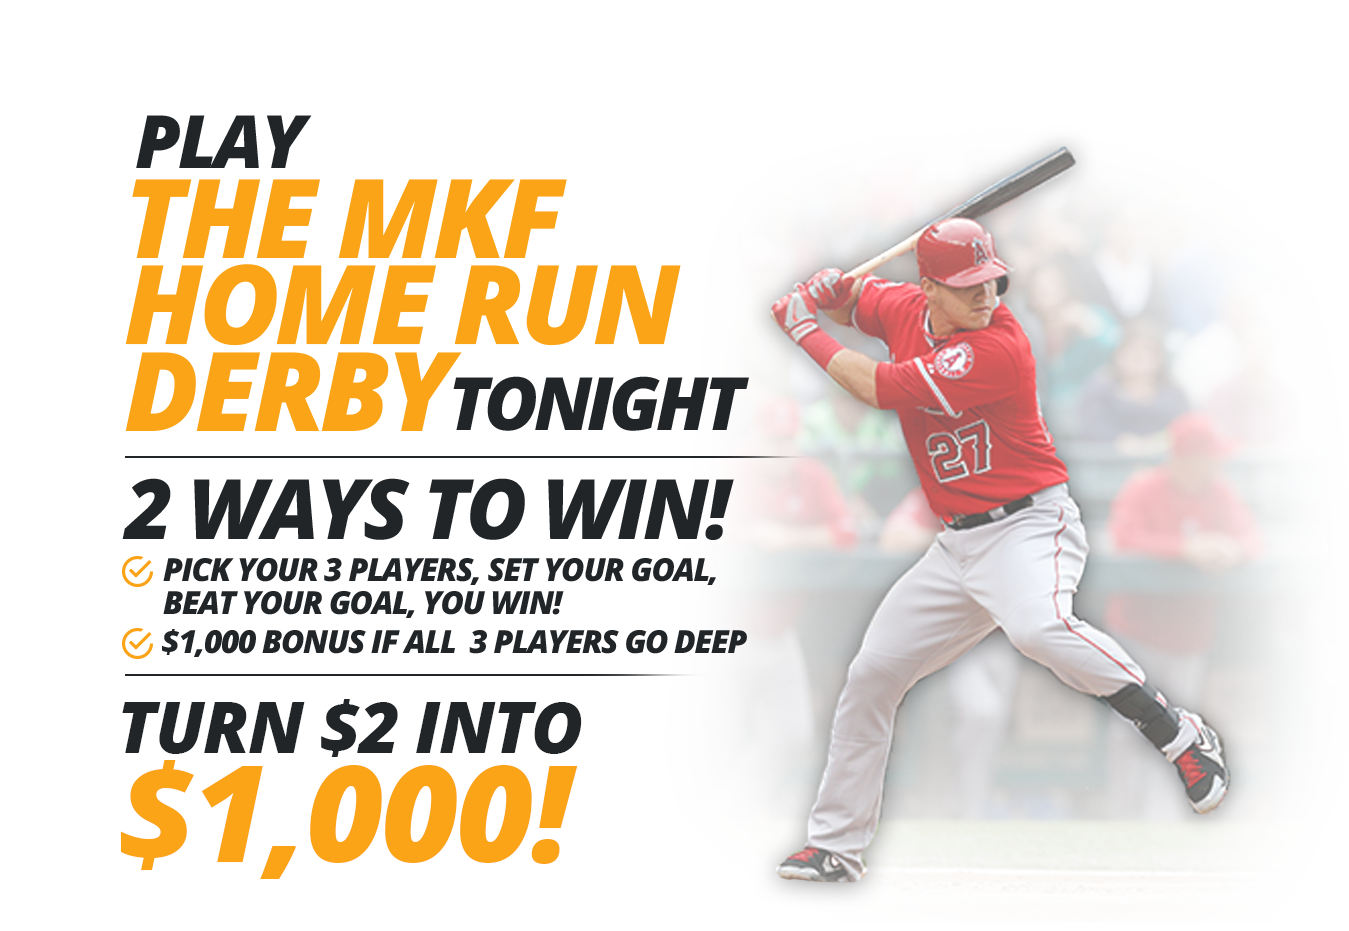 mlb derby video 3 - Mike Trout - Transparent